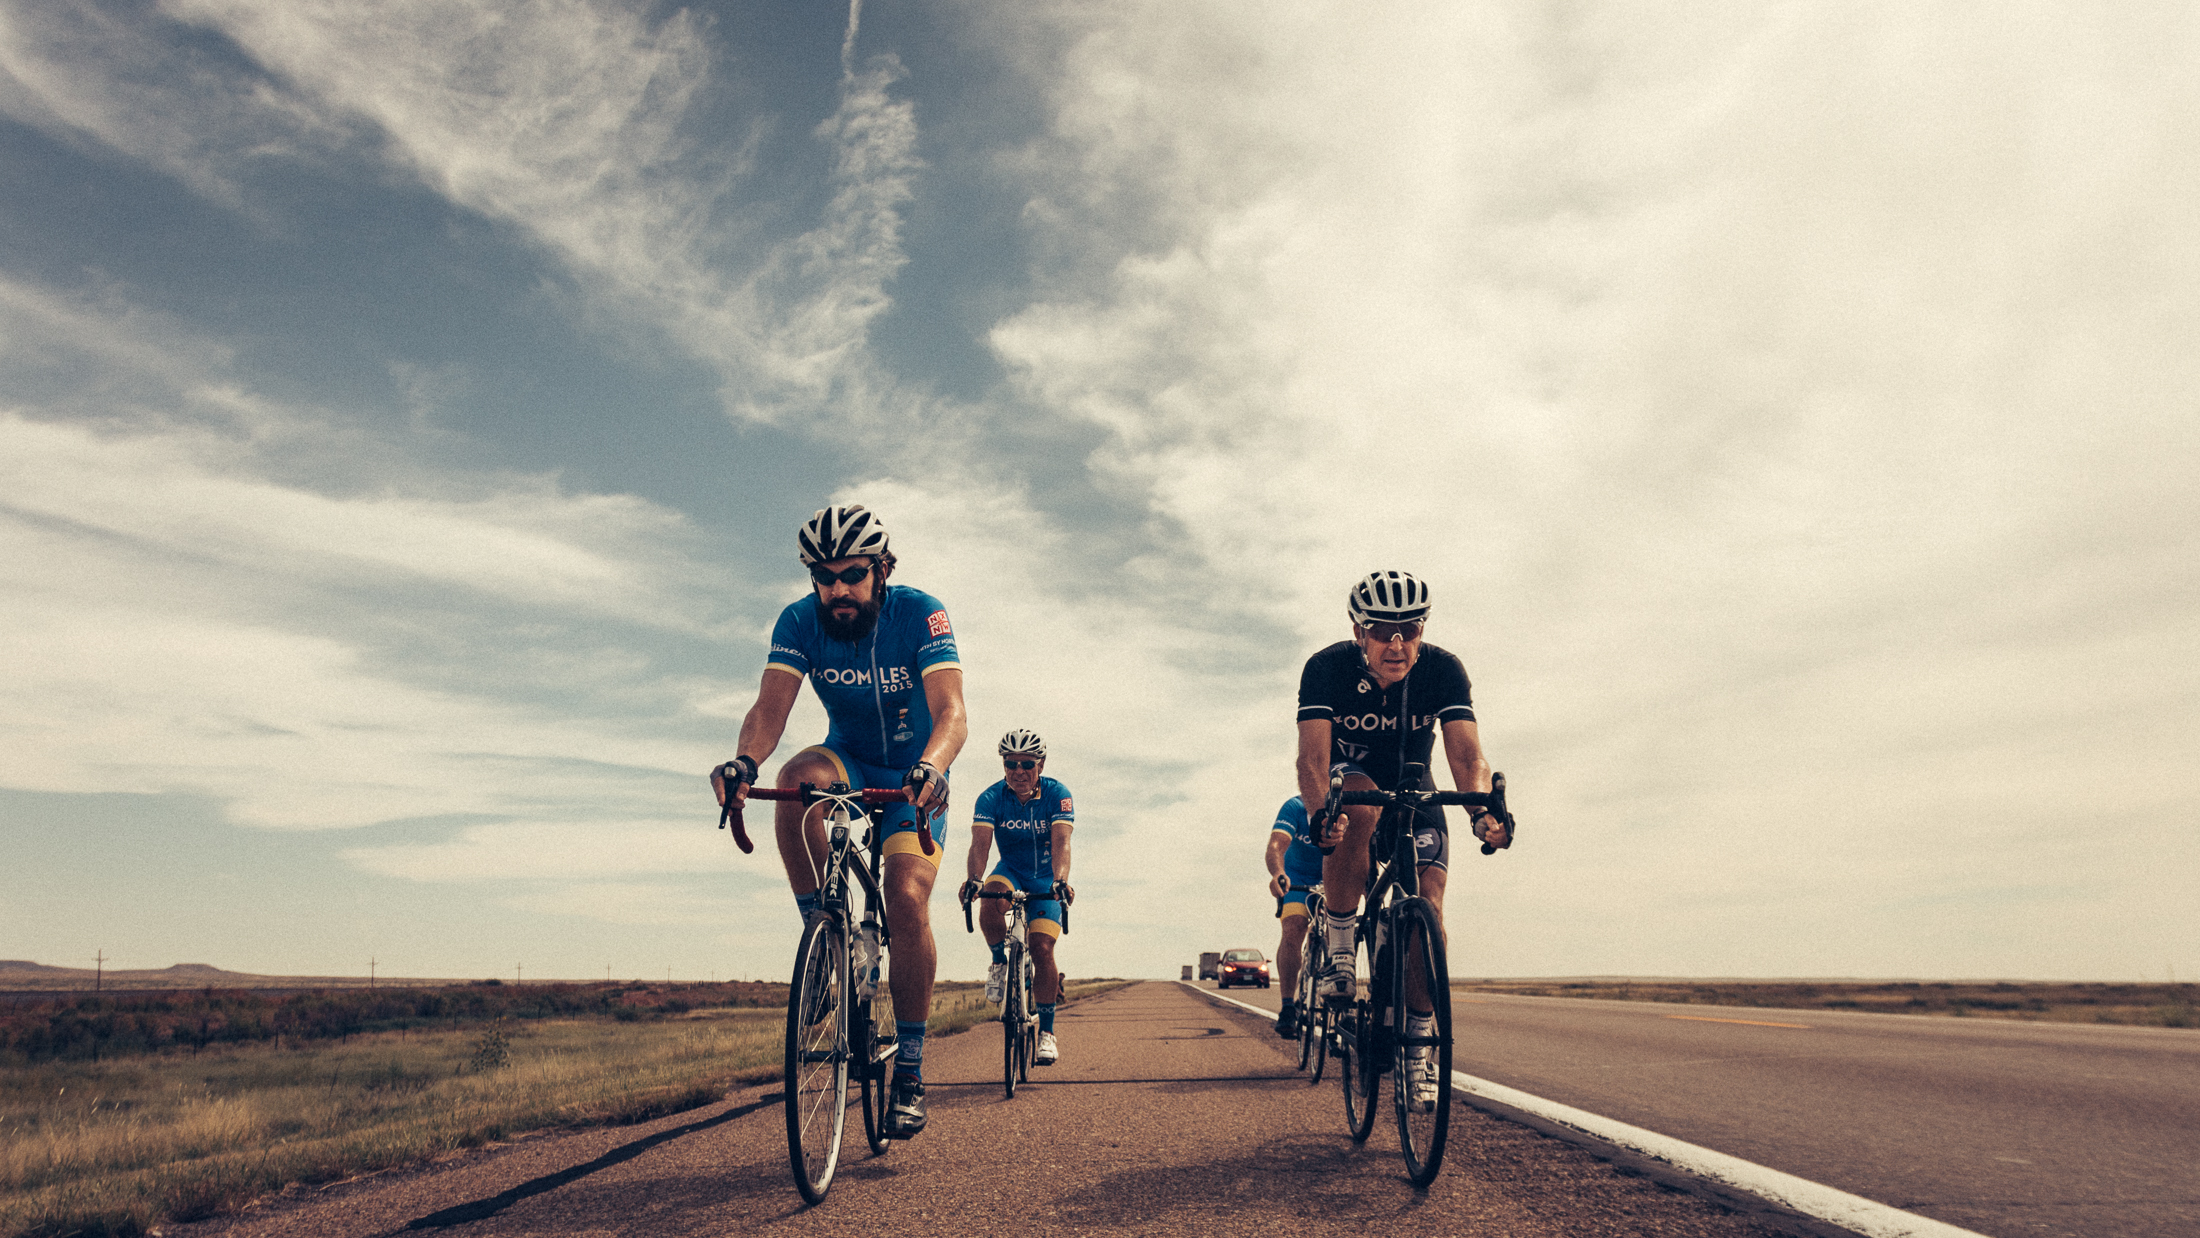 Riders for 1400 Miles cycling through north through New Mexico towards Colorado on a hot afternoon. Michael Lim Photography 2015 ©